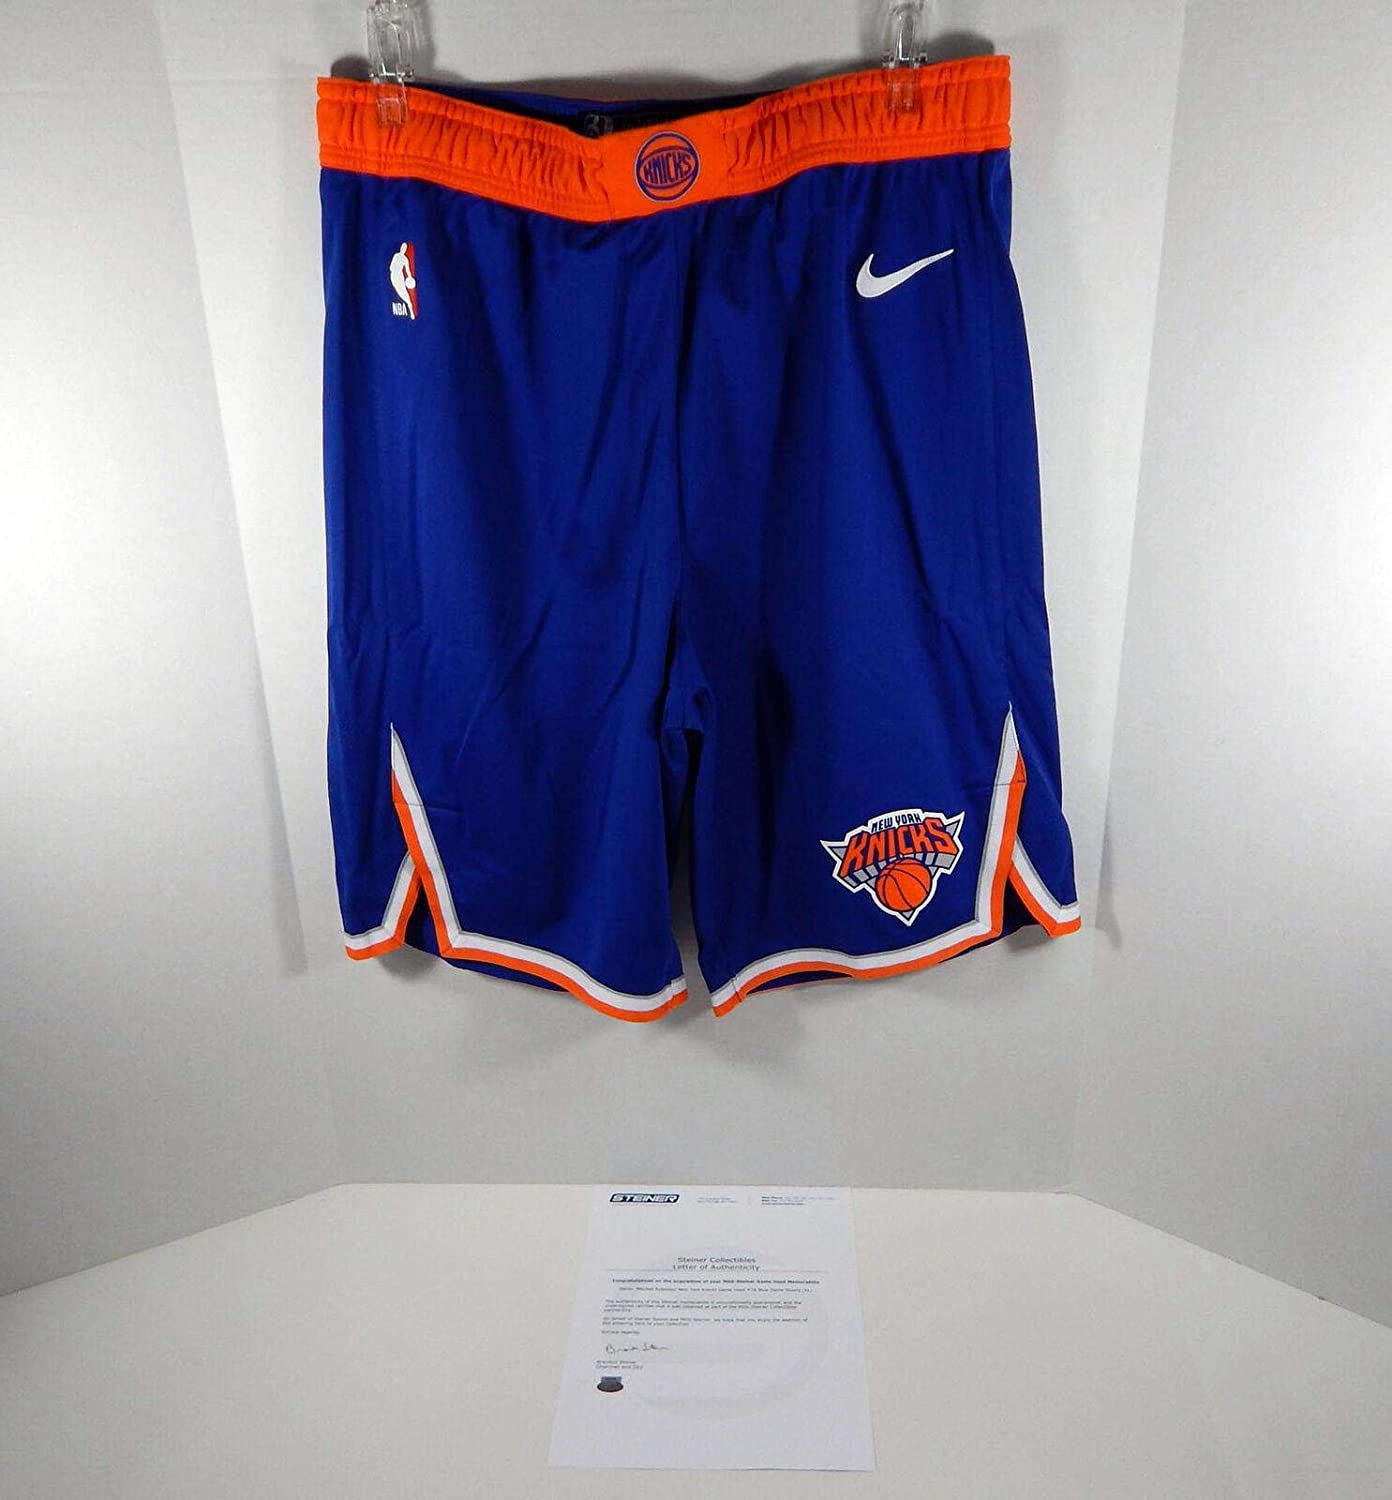 2018-19 New York Knicks Mitchell Robinson #26 Game Used Blue Shorts Pro Cut - NBA Game Used